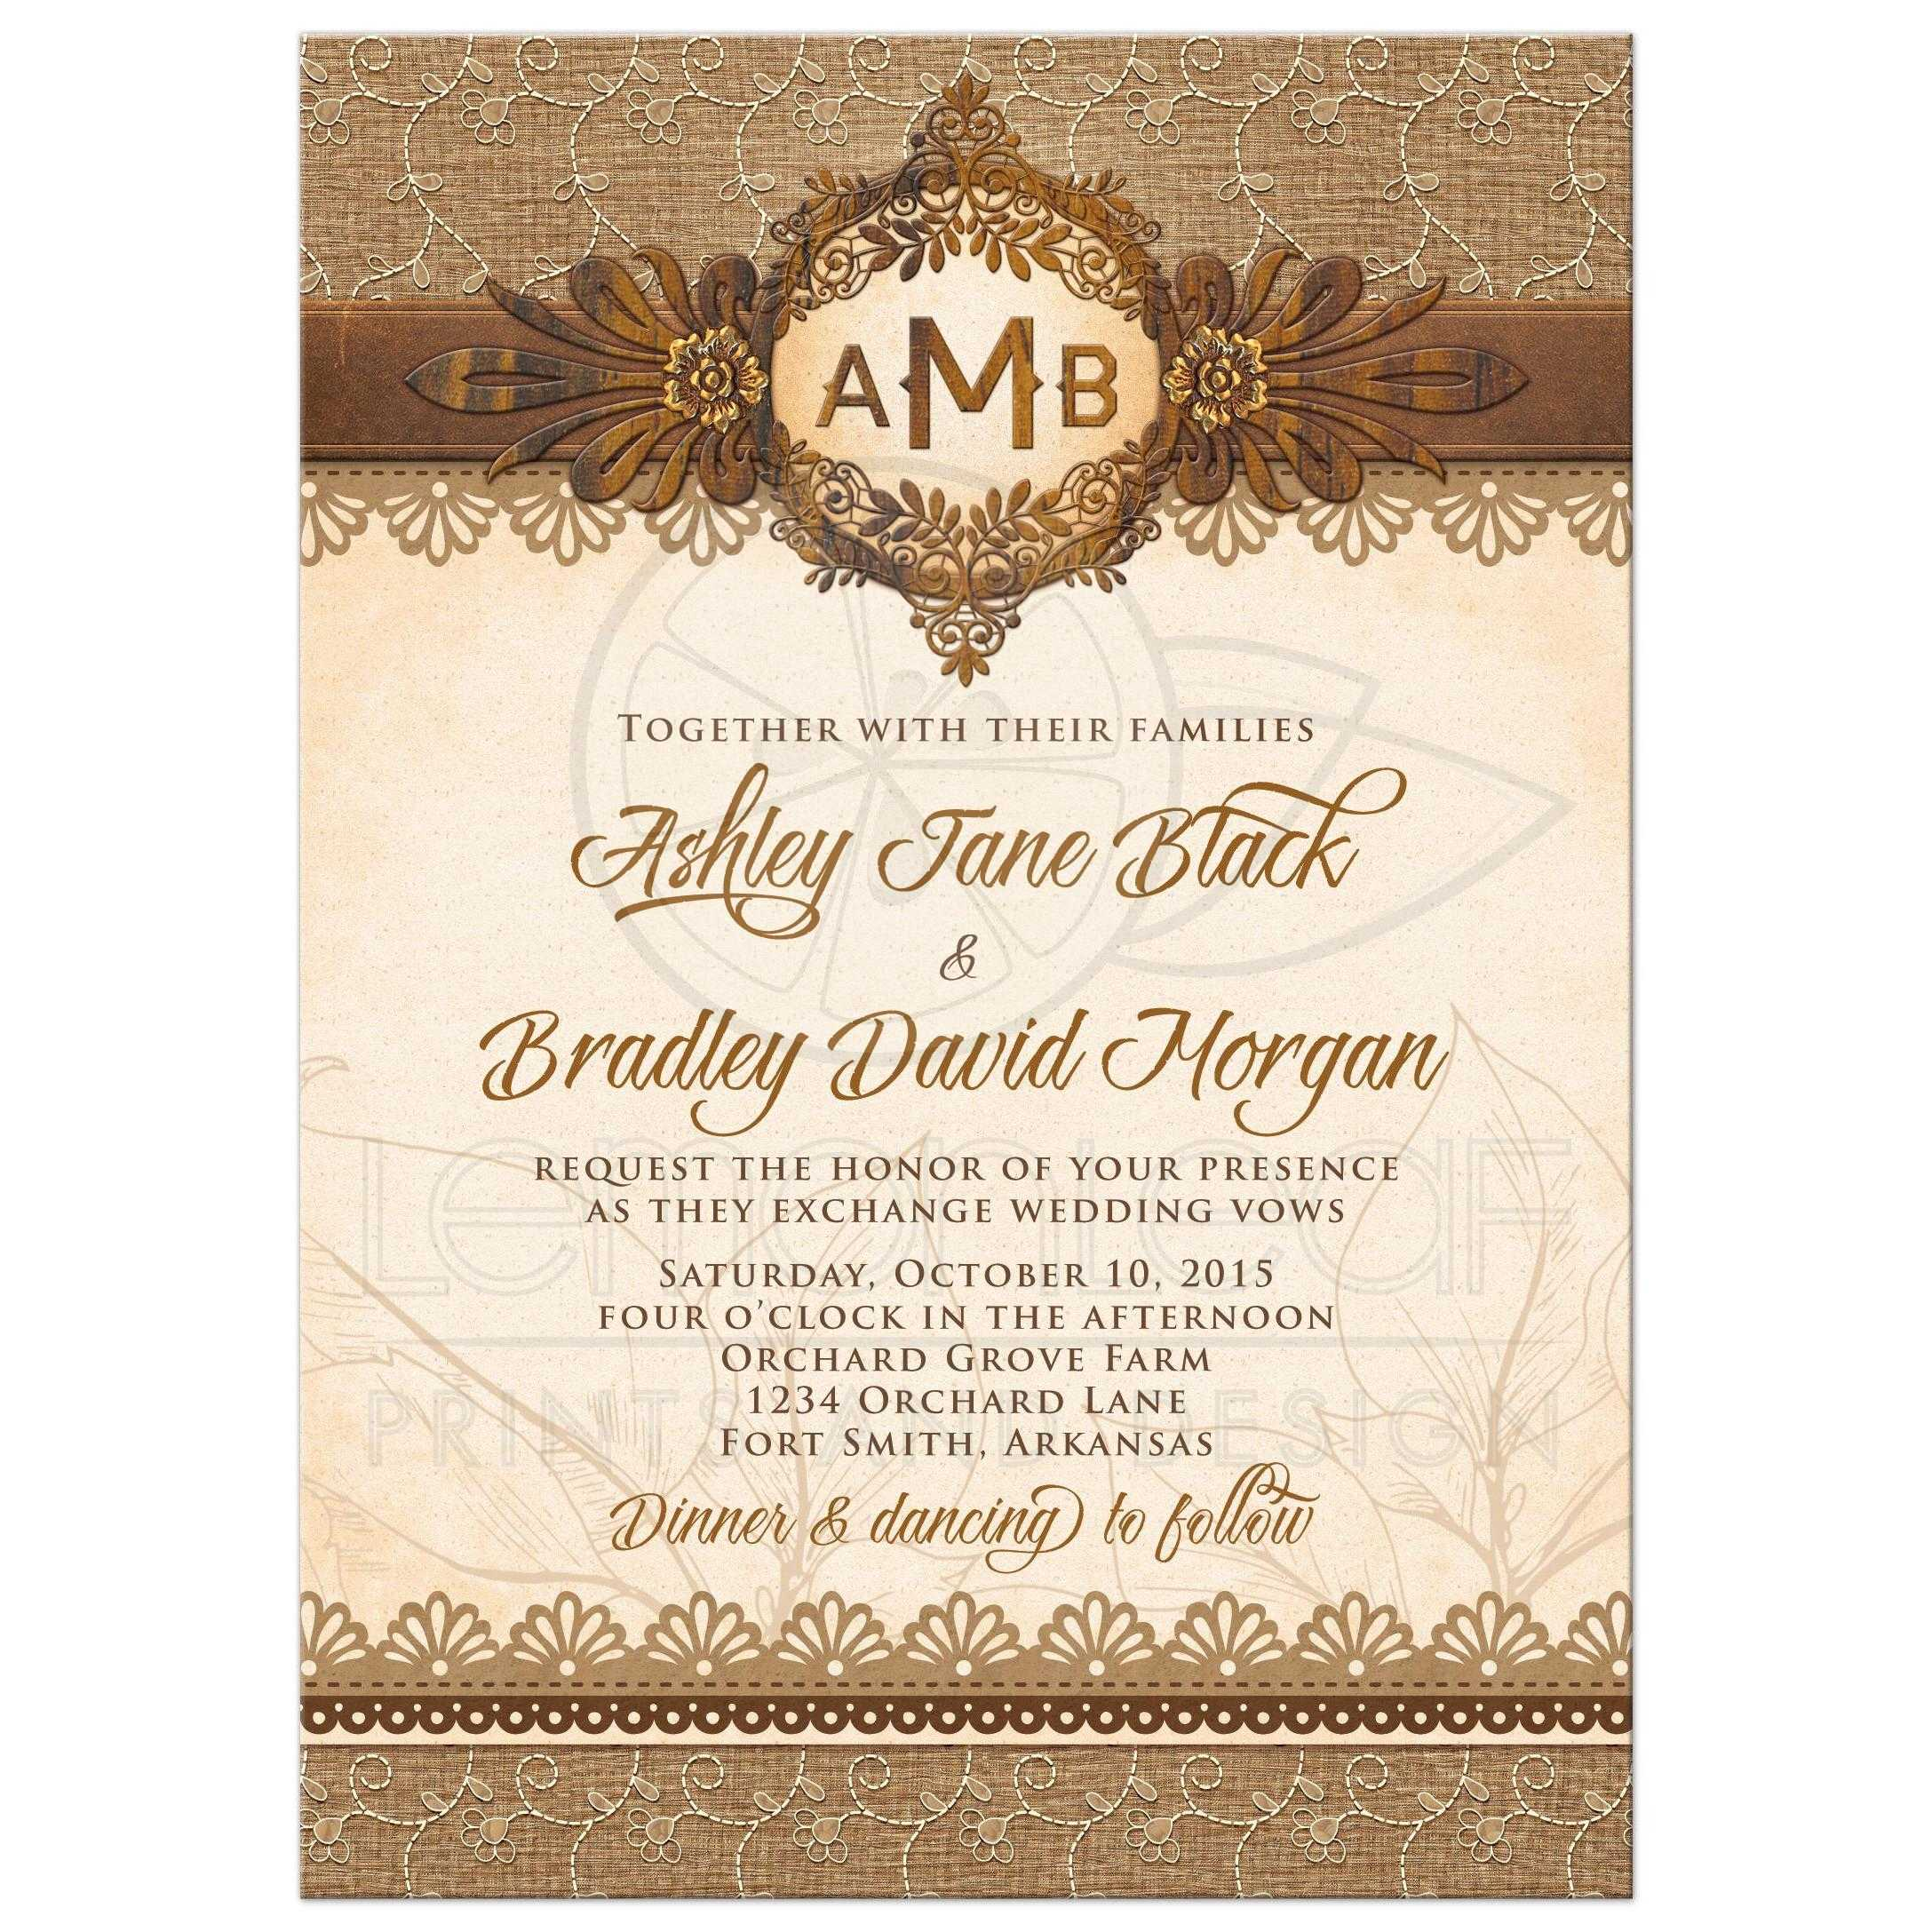 rustic monogram burlap lace wood emblem wedding invitation front - Wood Wedding Invitations